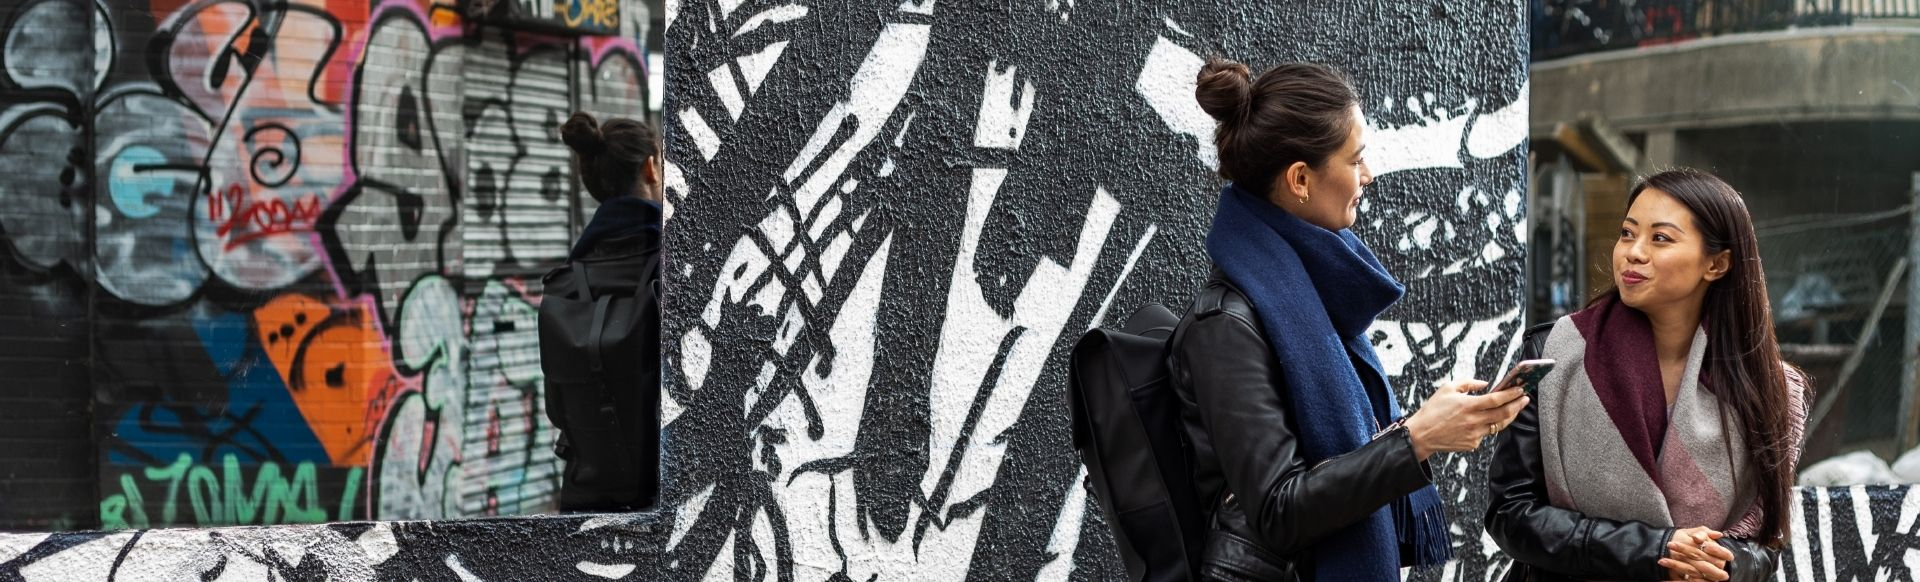 Two young women chatting in front of a streetart wall painted with black and white graffiti.